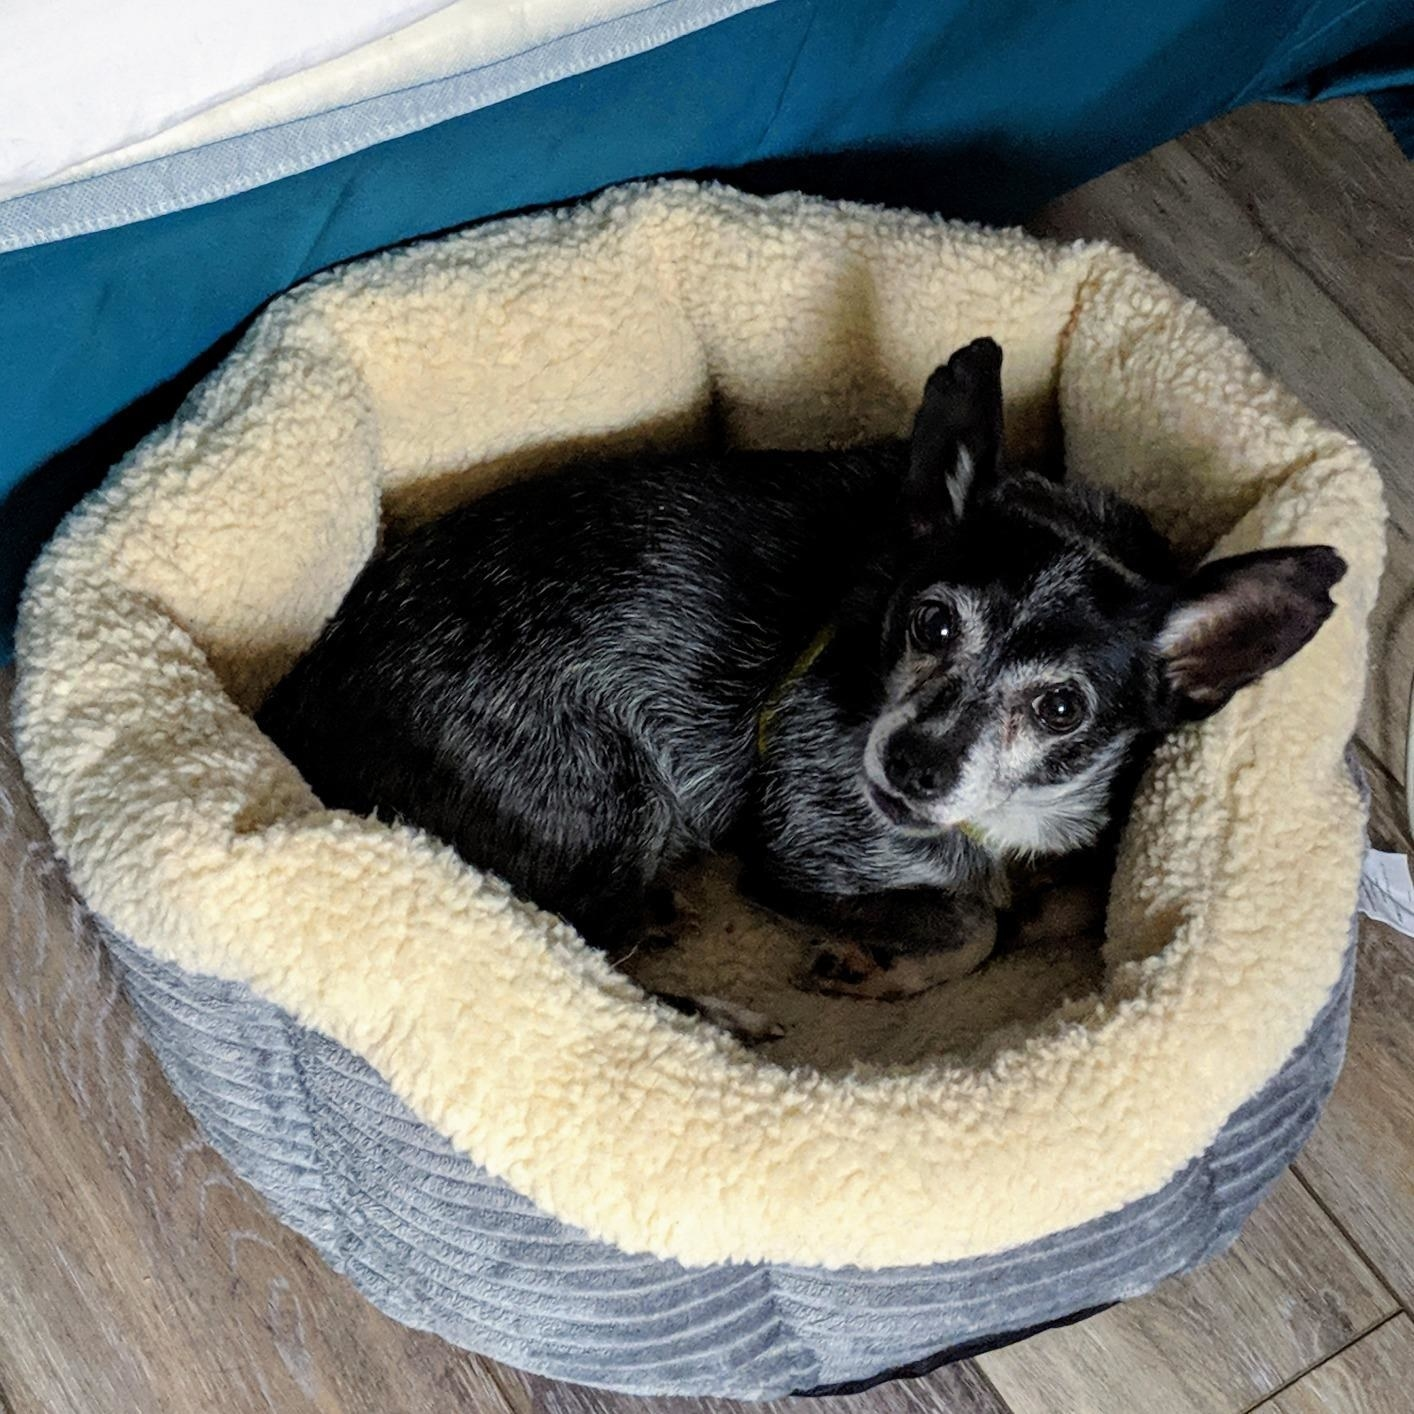 The dog bed in the round style, which has a plush sherpa lining